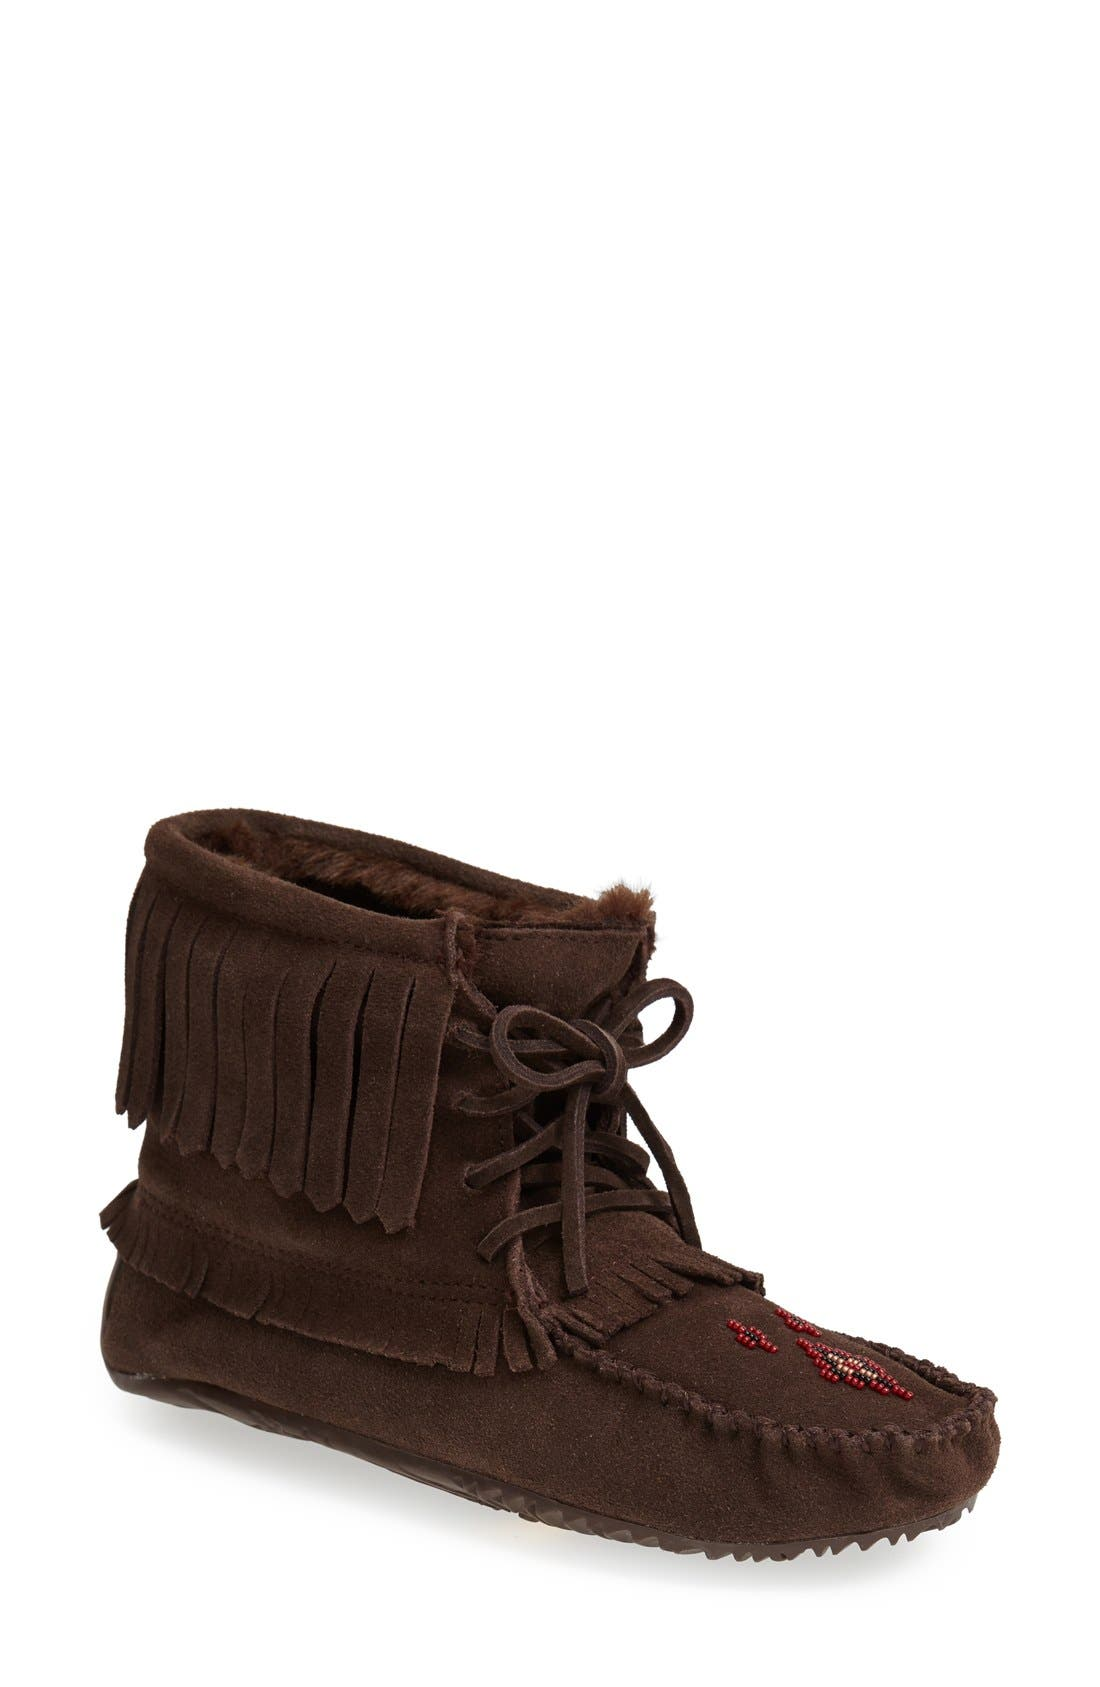 'Harvester' Moccasin,                             Main thumbnail 3, color,